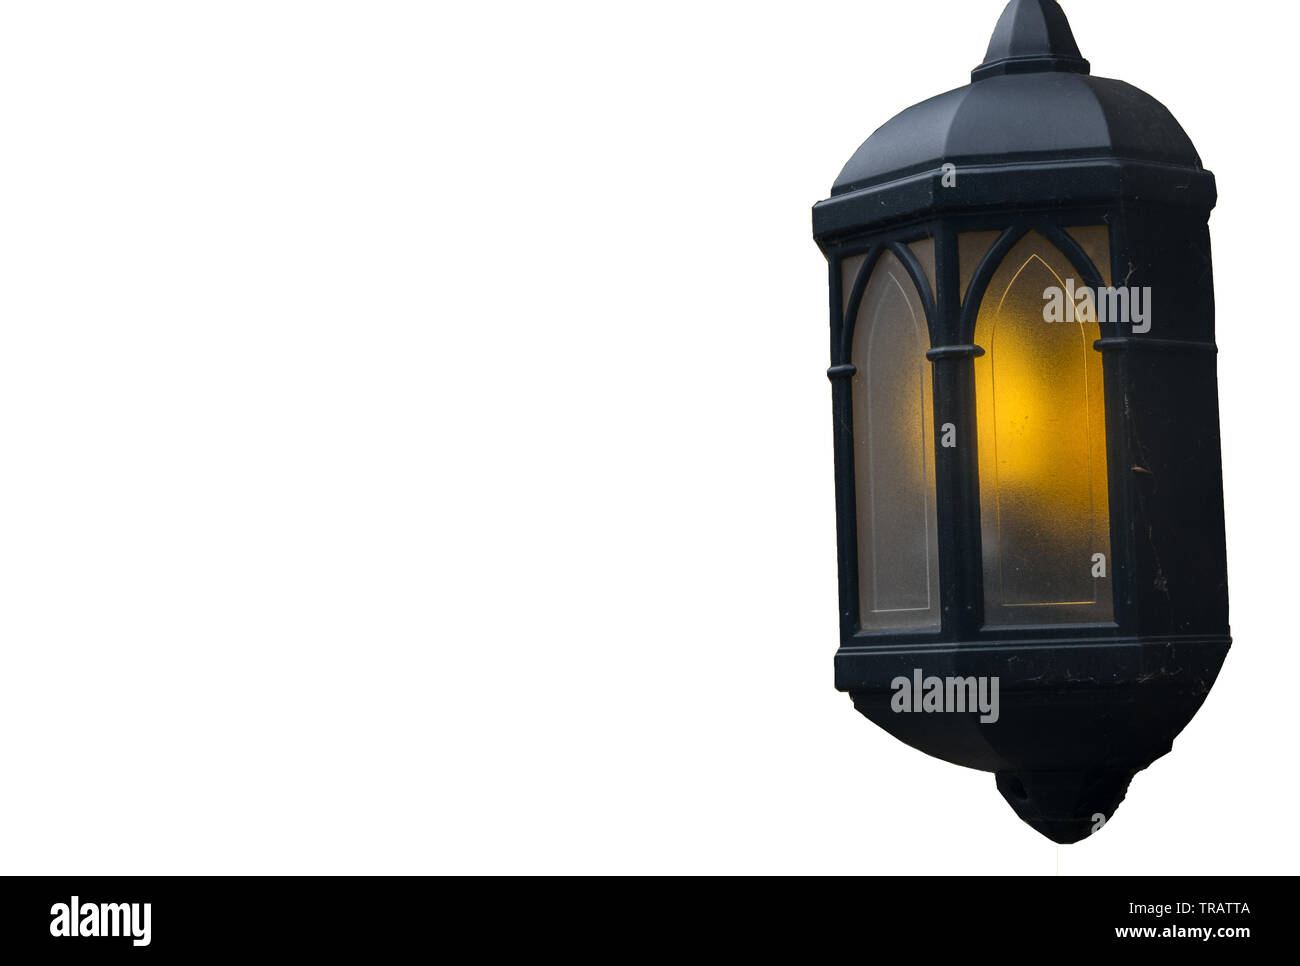 Lamps illuminate the evening attached to the house isolated over the white background. - Stock Image